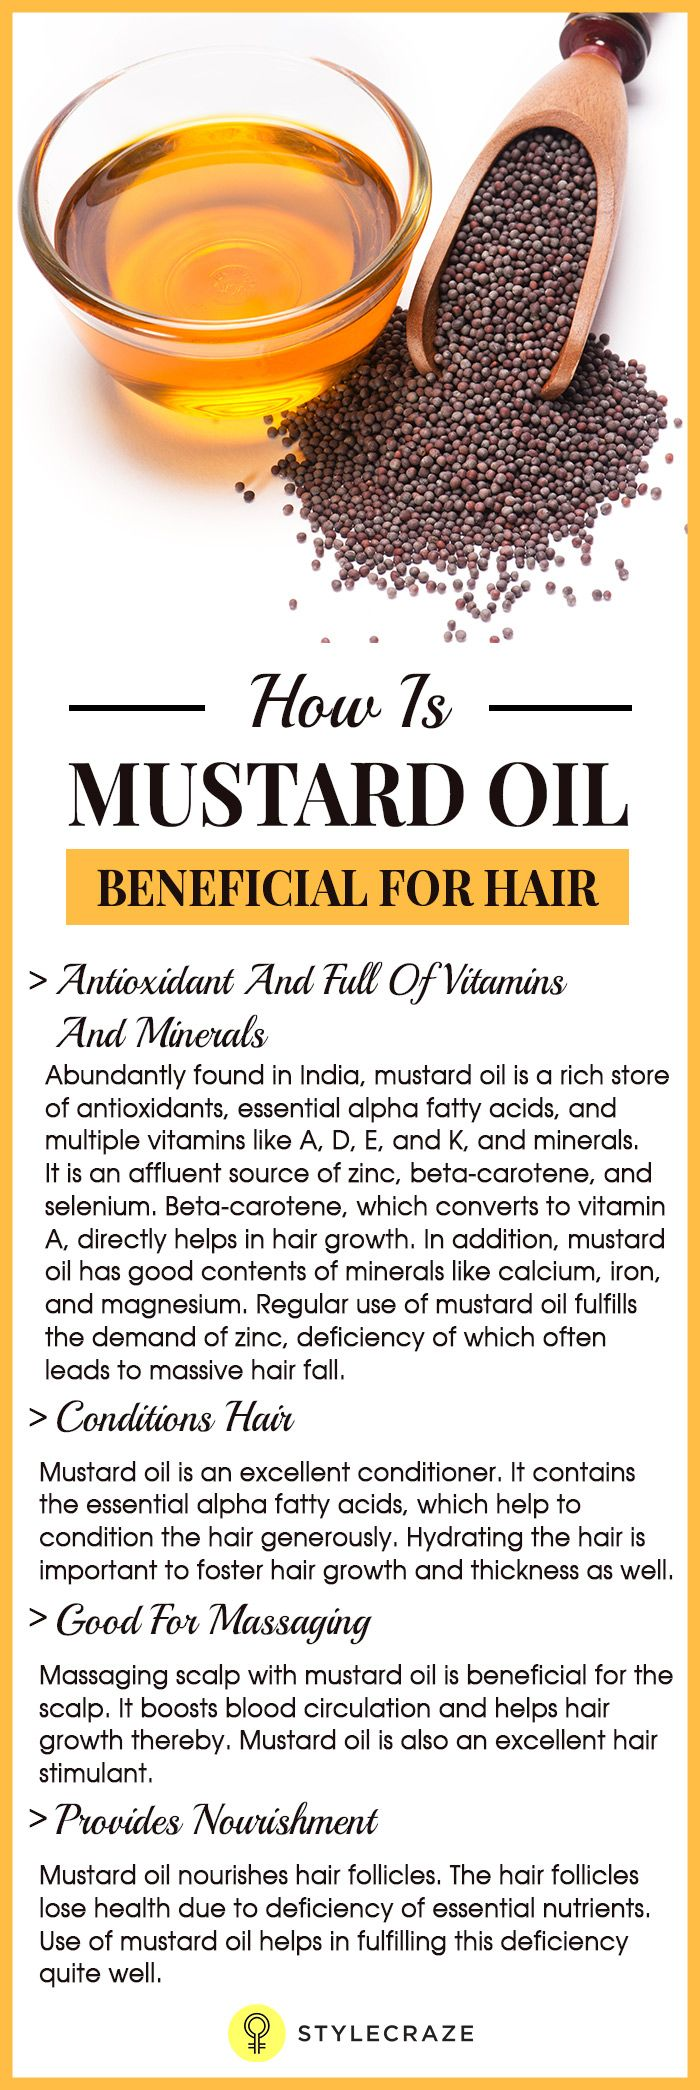 Hair fall, split ends, and baldness have become quite common in recent times. How many of you are happy with your hair? Most people suffer from diverse hair problems since birth due to factors which can be either internal (within the body) or external. For such varied problems, mustard oil which is popularly known as 'sarso ka tel' in Hindi is a unique savior. The application of this natural oil has been in vogue since ancient times, when cosmetic products were yet to make their mark. Read…